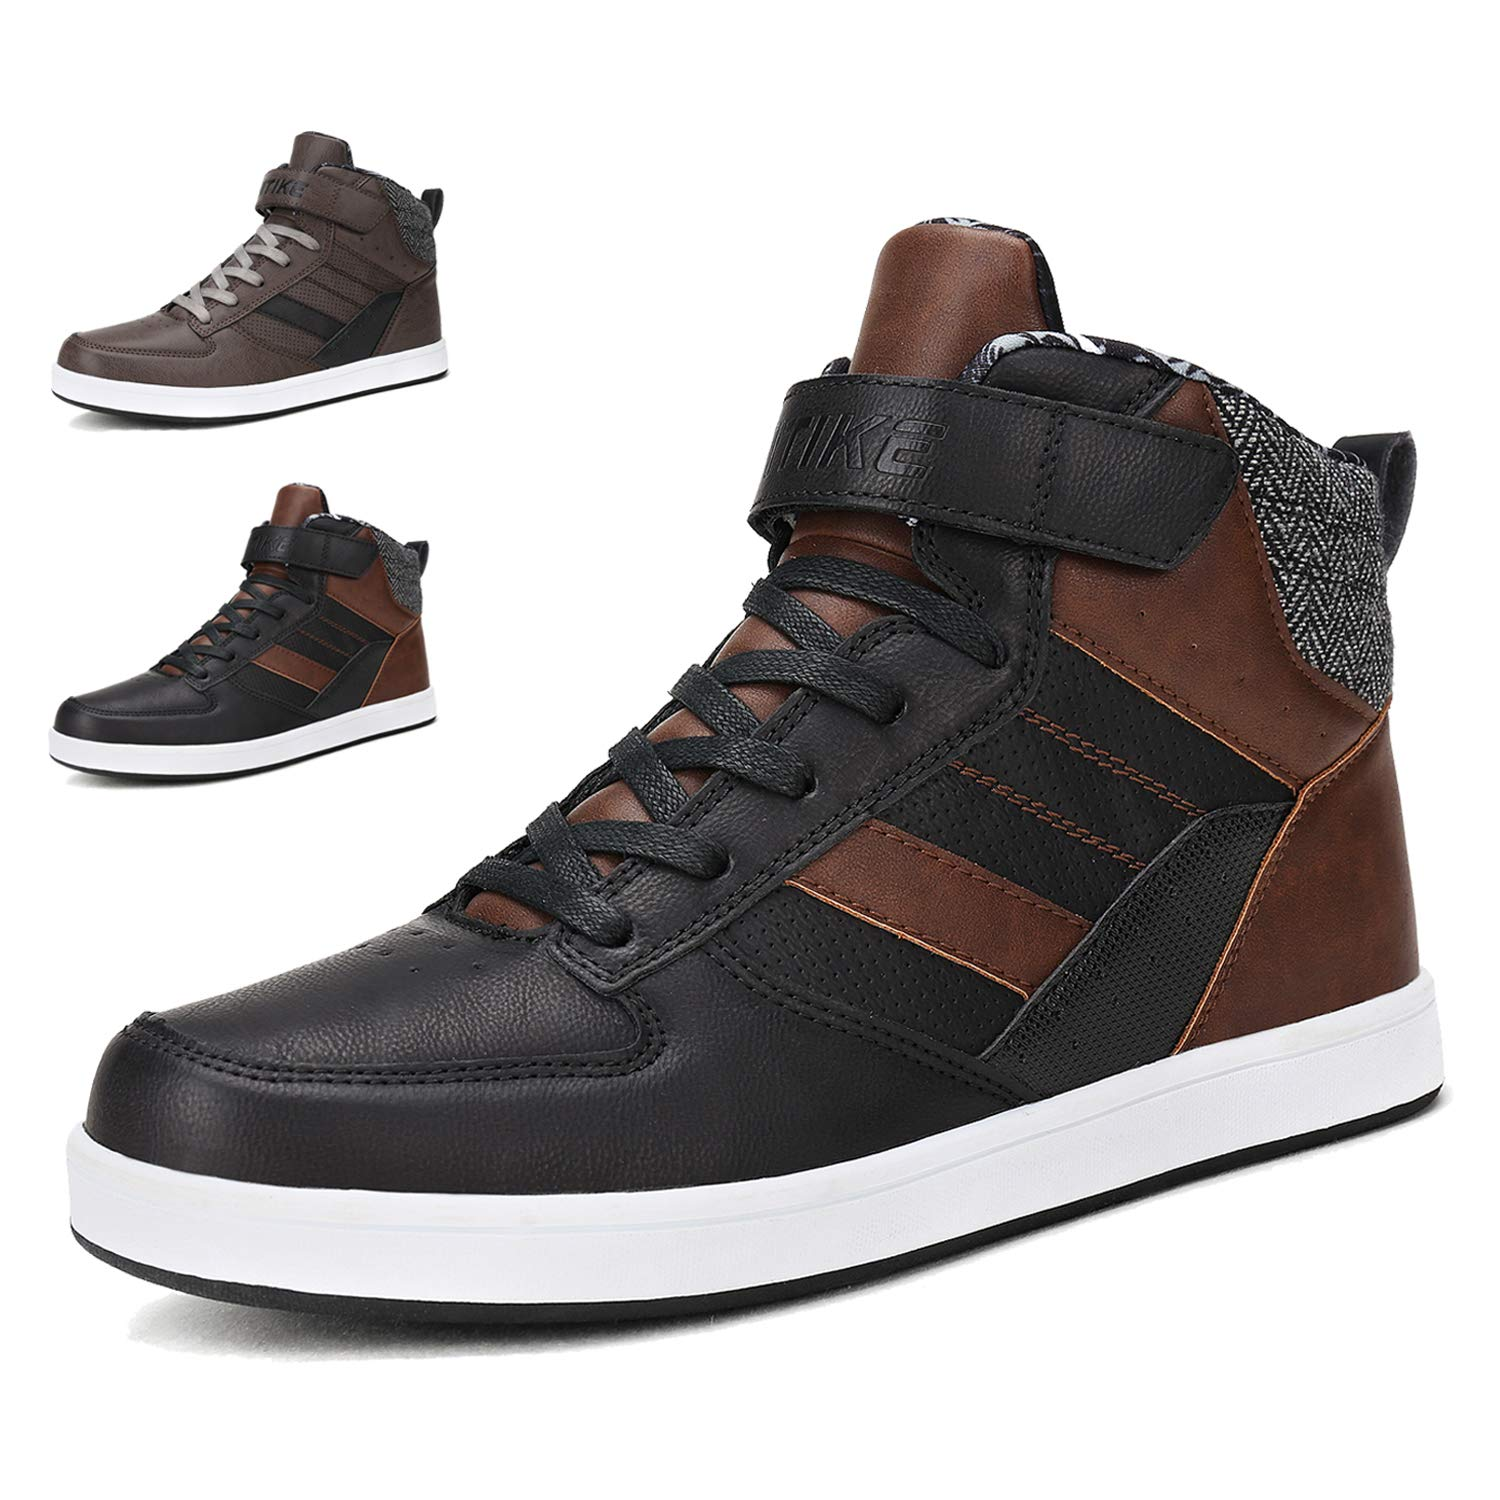 WETIKE Men's Sneakers Fashion High Top Shoes Classic Skateboarding Shoes Slip-on Casual Boots Leather Street Sport Shoes Outdoor Indoor